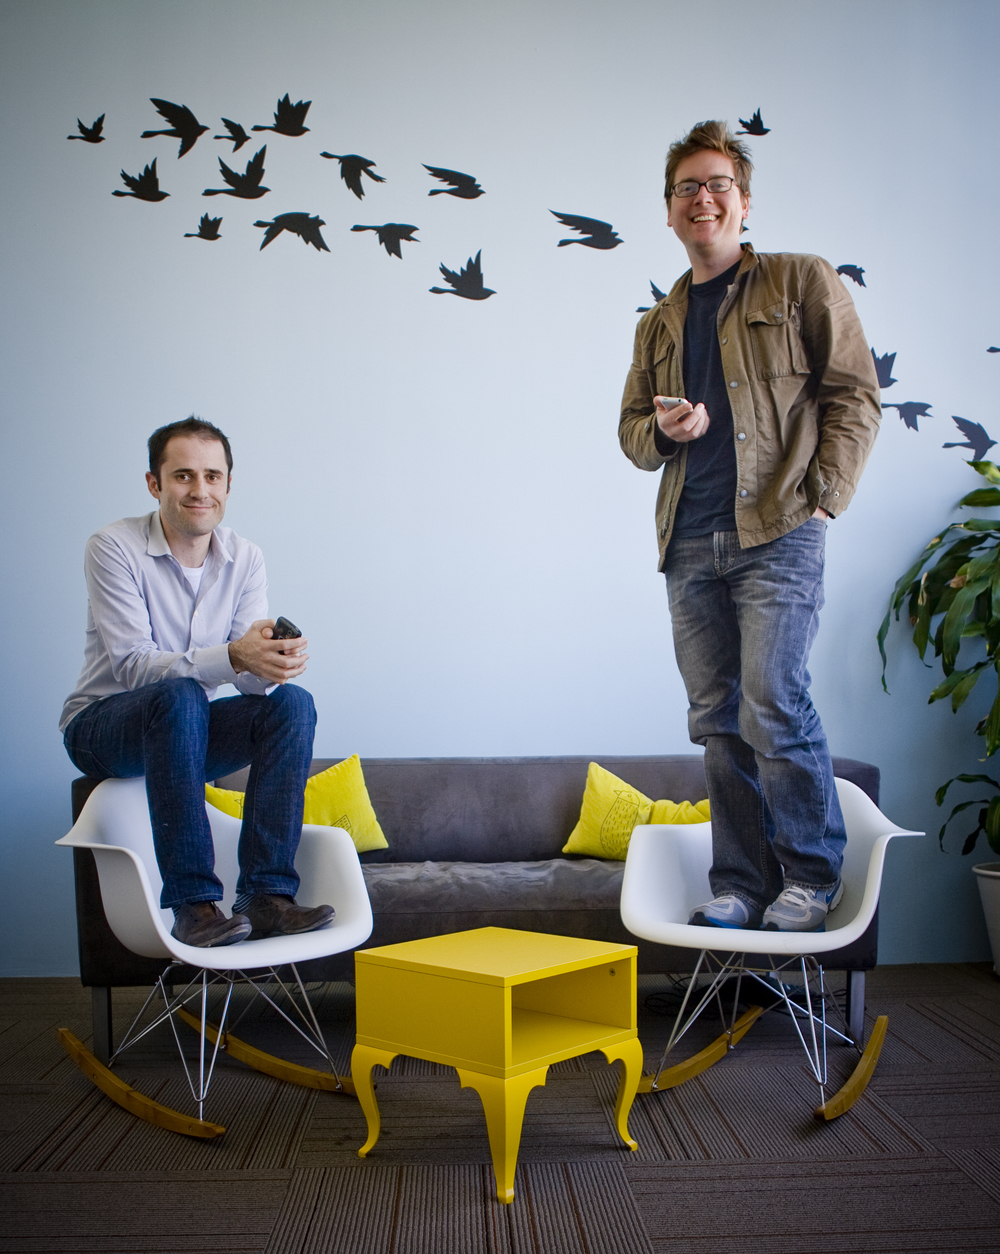 Evan Williams & Biz Stone - Twitter co-founders